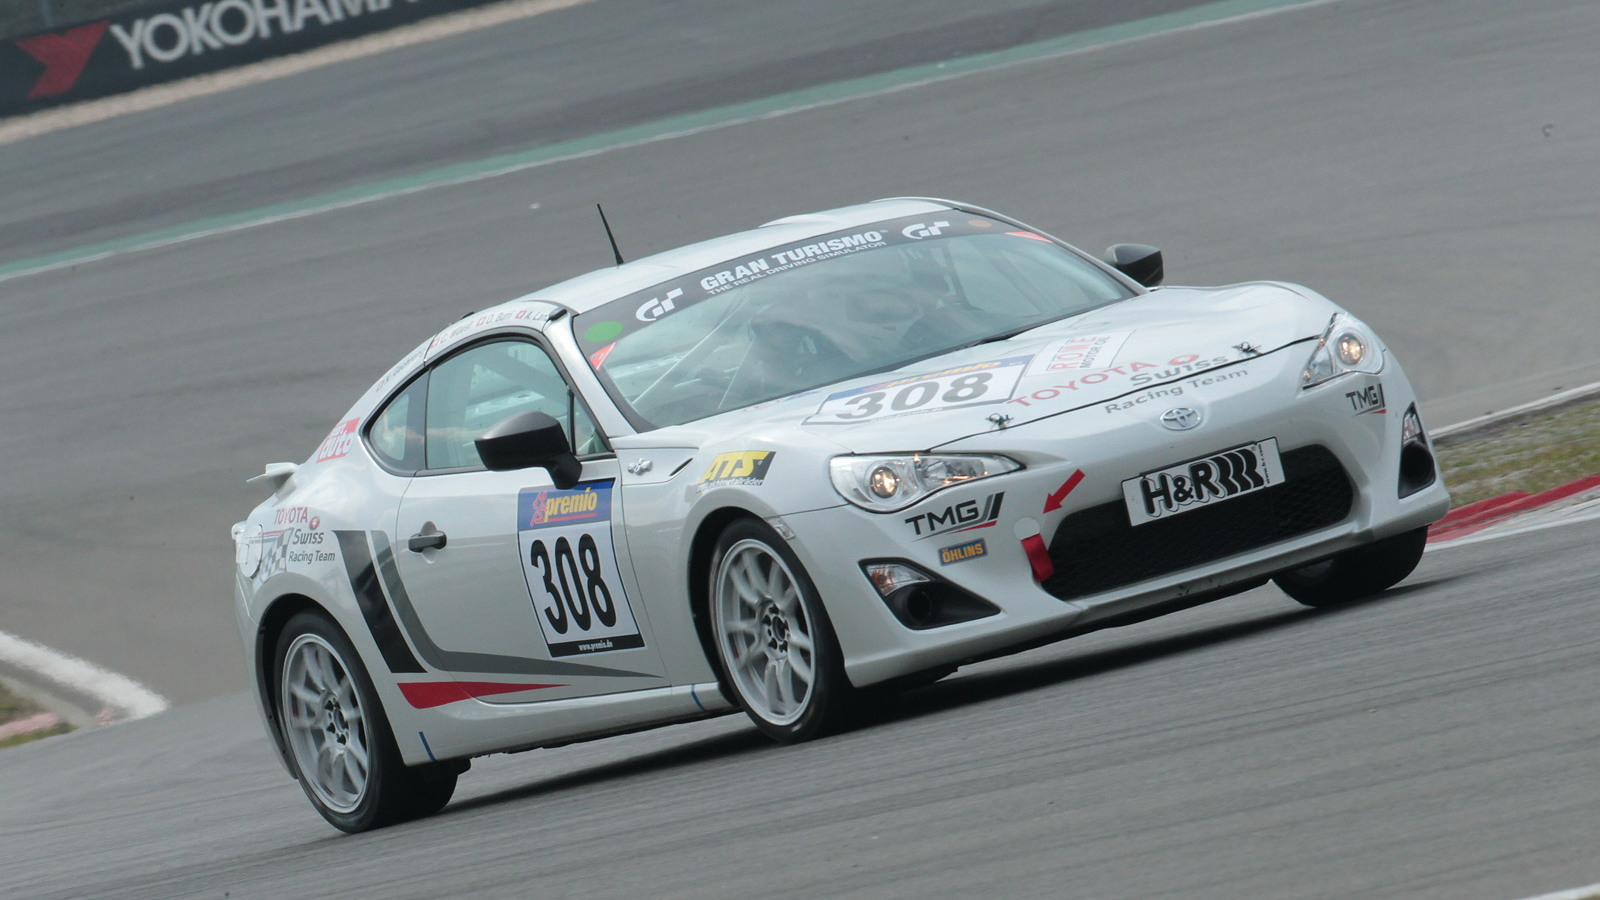 Toyota GT 86 CS-V3 race car built by Toyota Motorsport GmbH